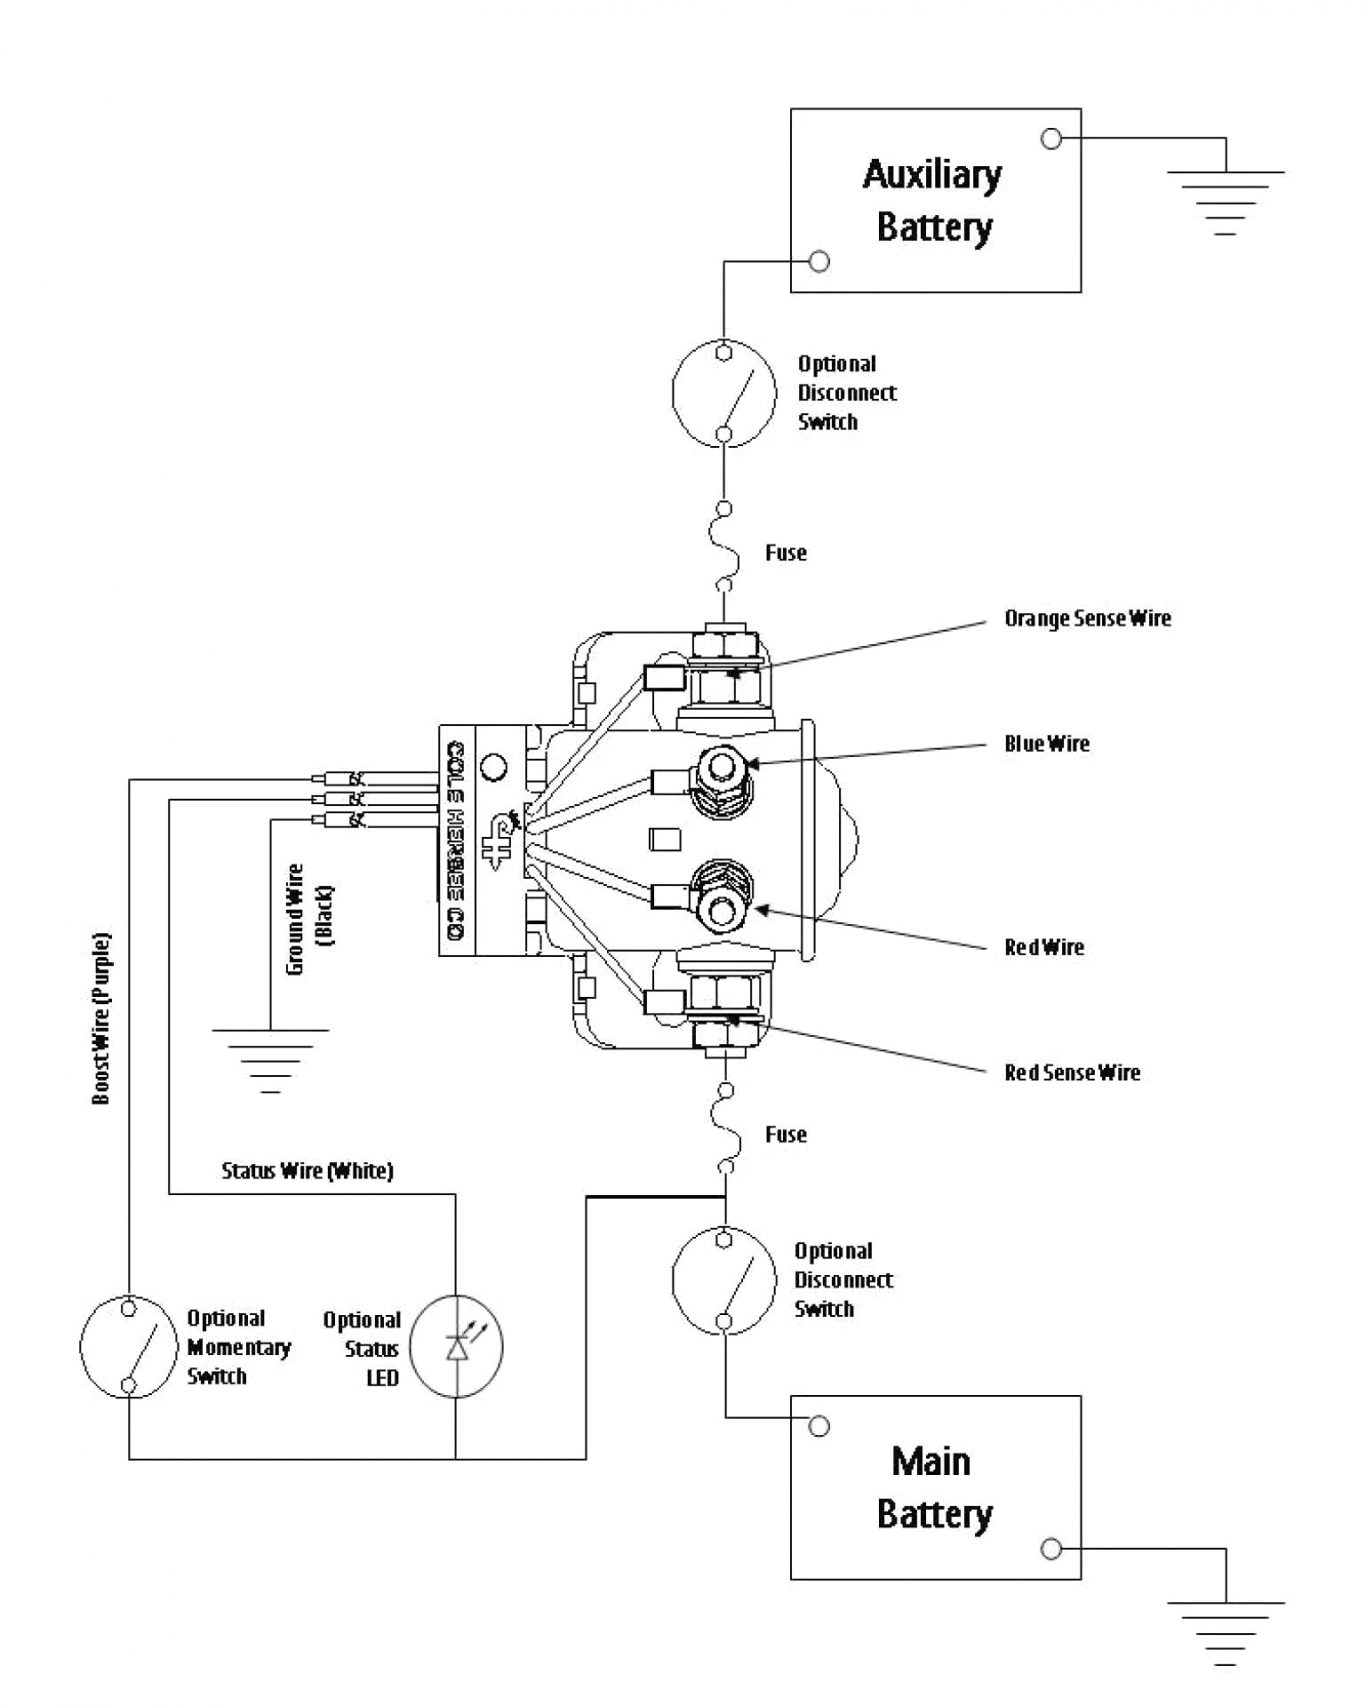 Ingersoll Rand 2475n7 5 Wiring Diagram Collection